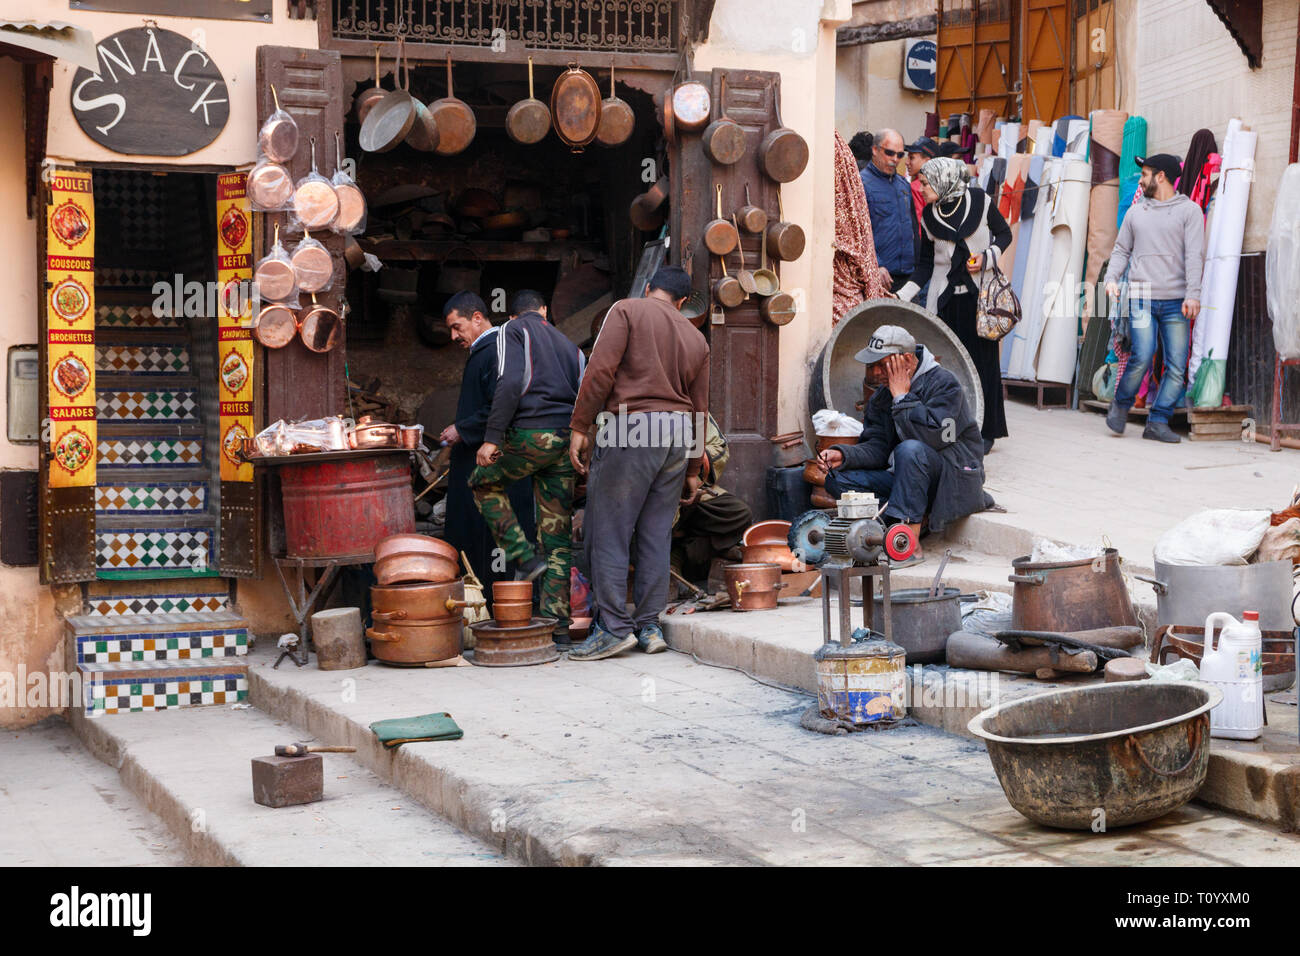 Coppersmiths crafting pots and pans in a workshop at Seffarine square in the Fez Medina, Morocco. - Stock Image